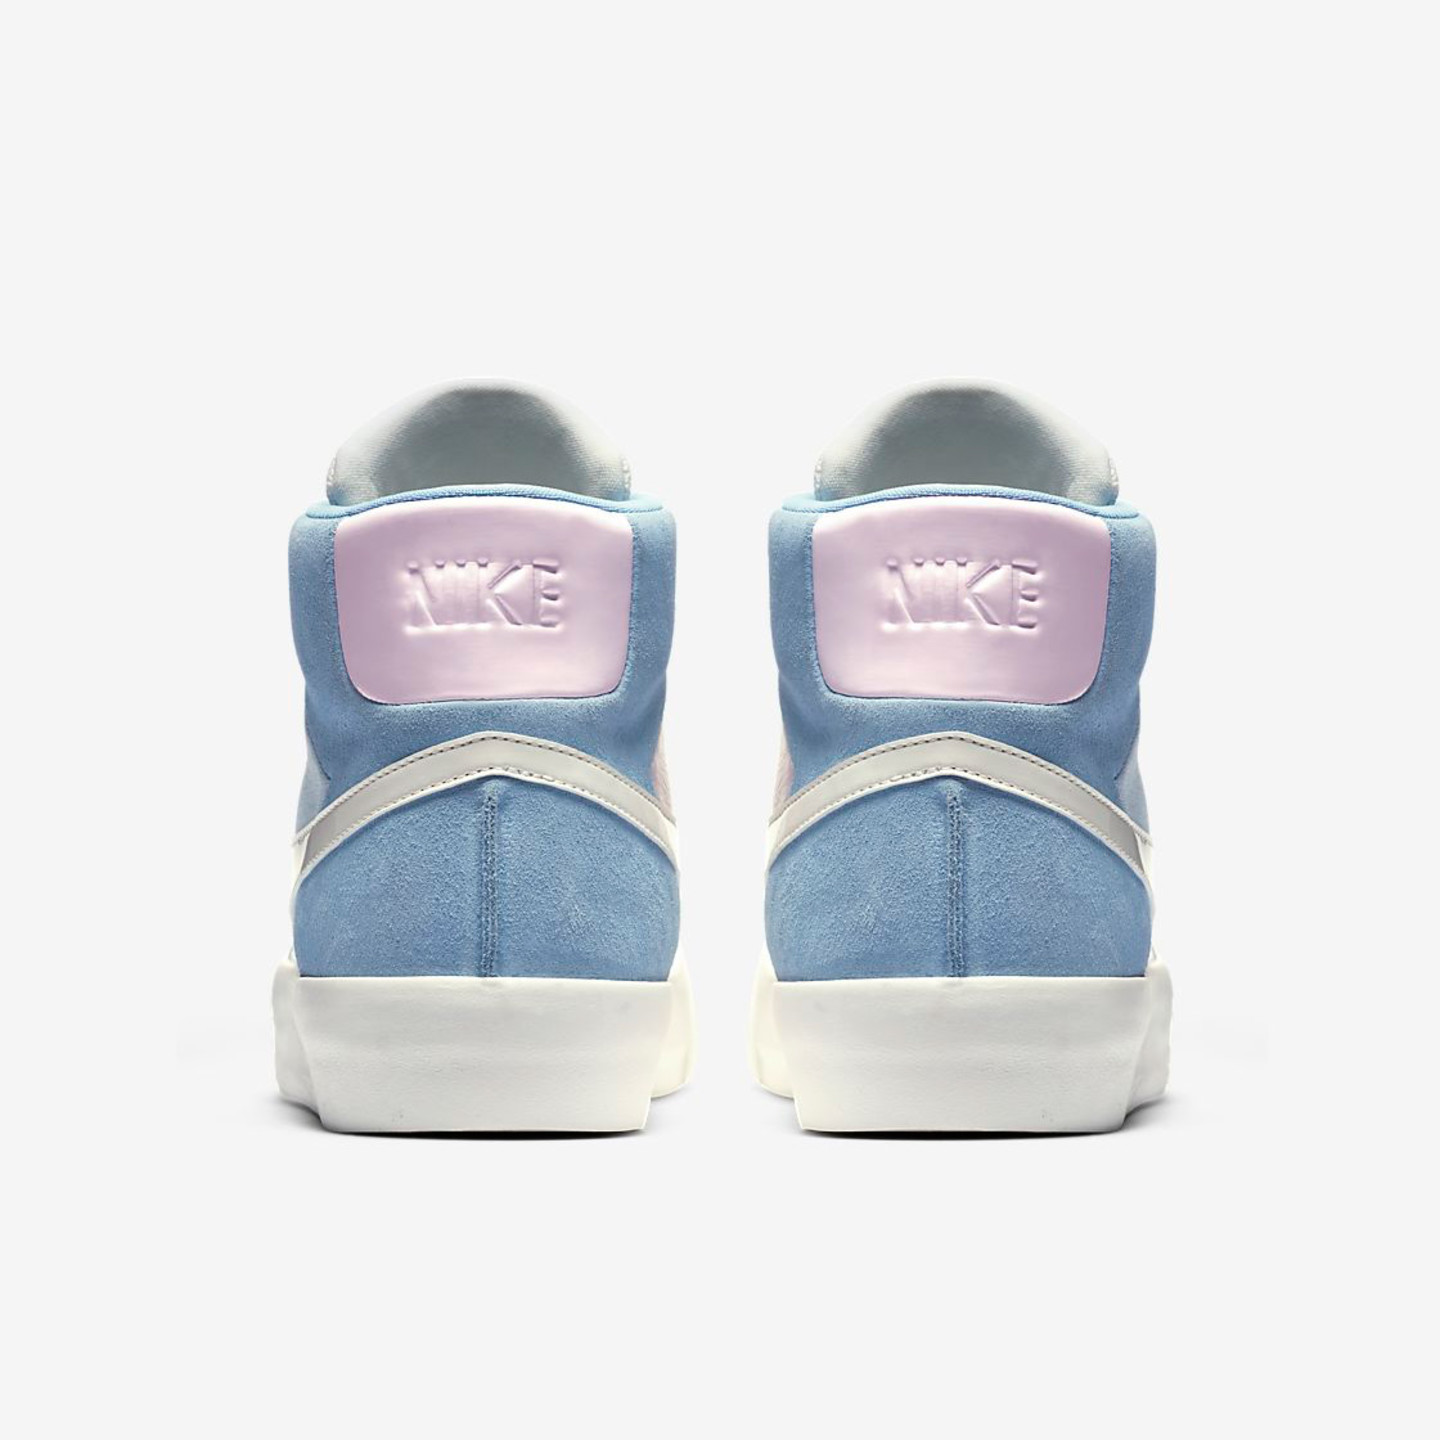 Nike Blazer Royal QS 'Easter Pack' Arctic Pink / Sail / Leche Blue / Ice Blue AO2368-600